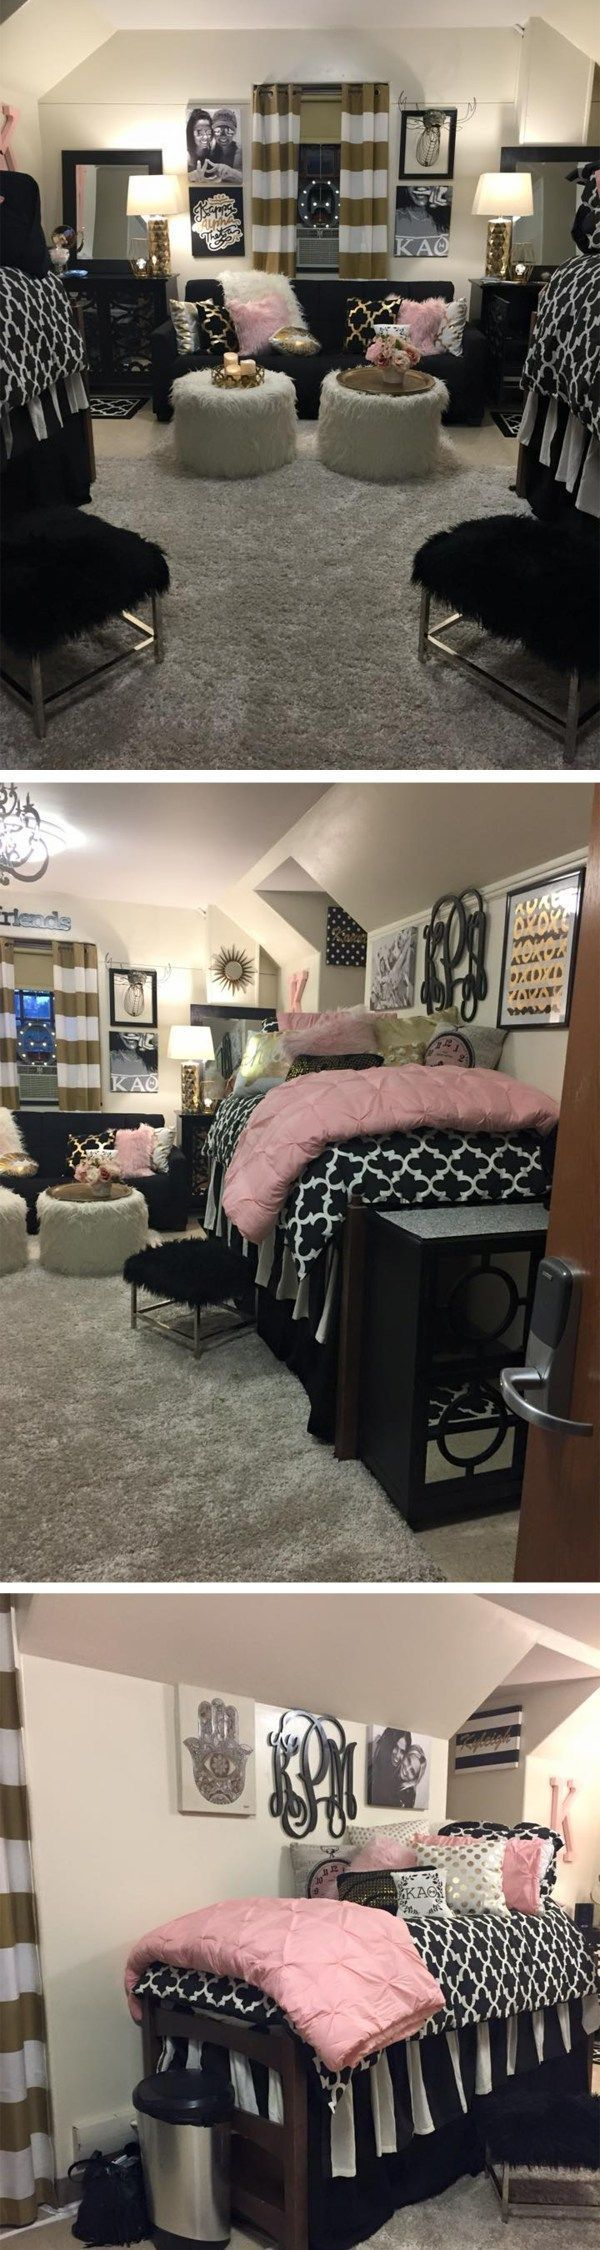 Having a lot of decor is great for coordinating dorm room ideas!